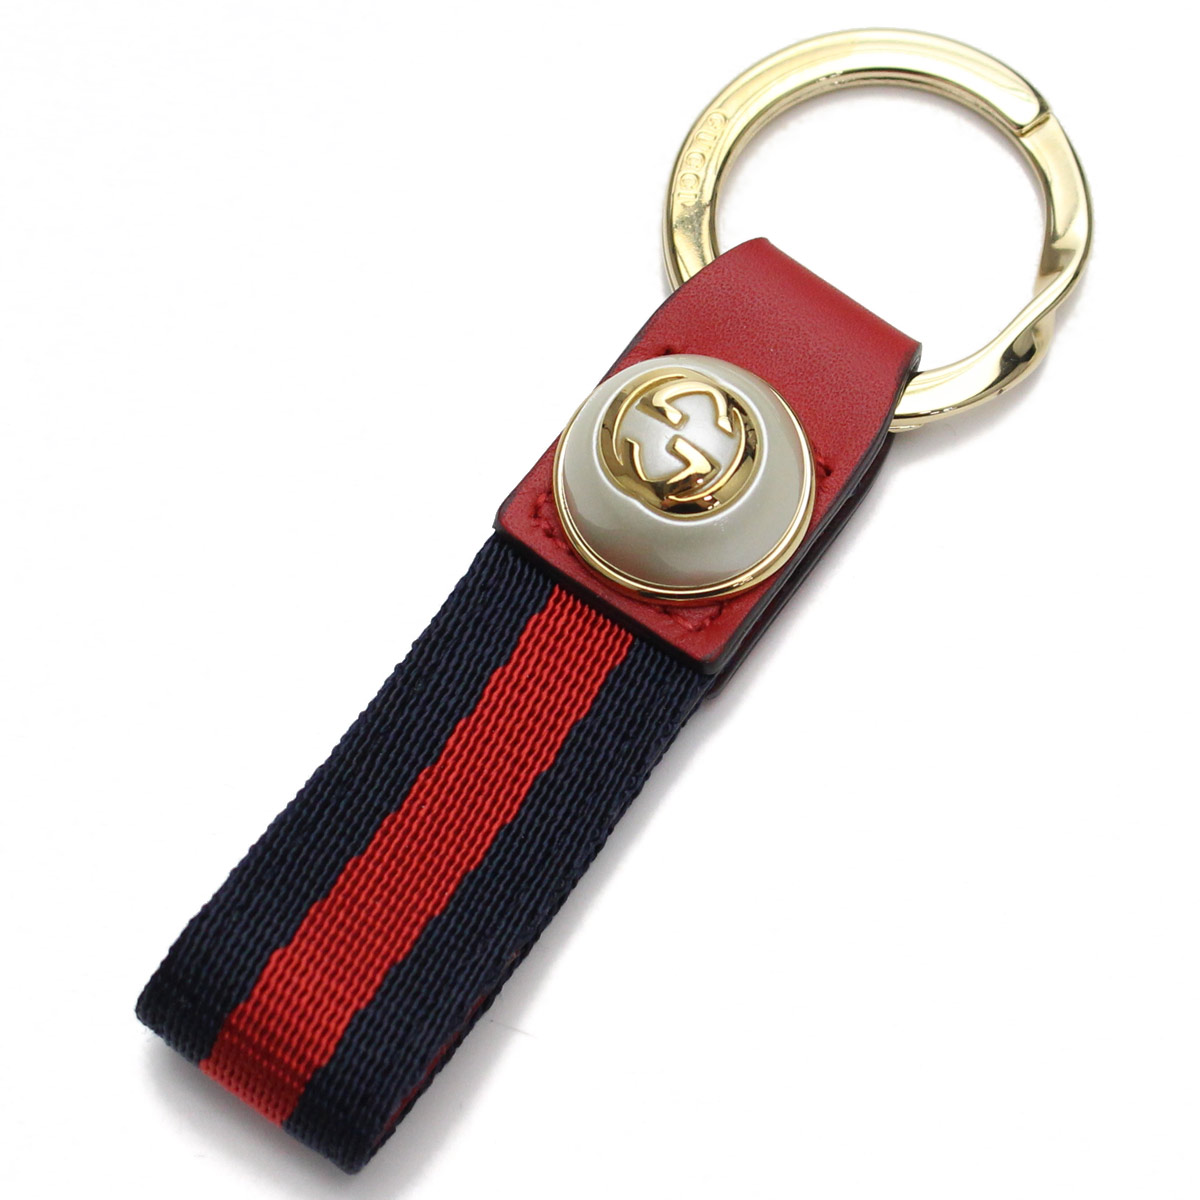 81baa111c50 Bighit The total brand wholesale  Gucci (GUCCI) GG pearl Web key ring  476390 H9VEG 8447 red system blue system